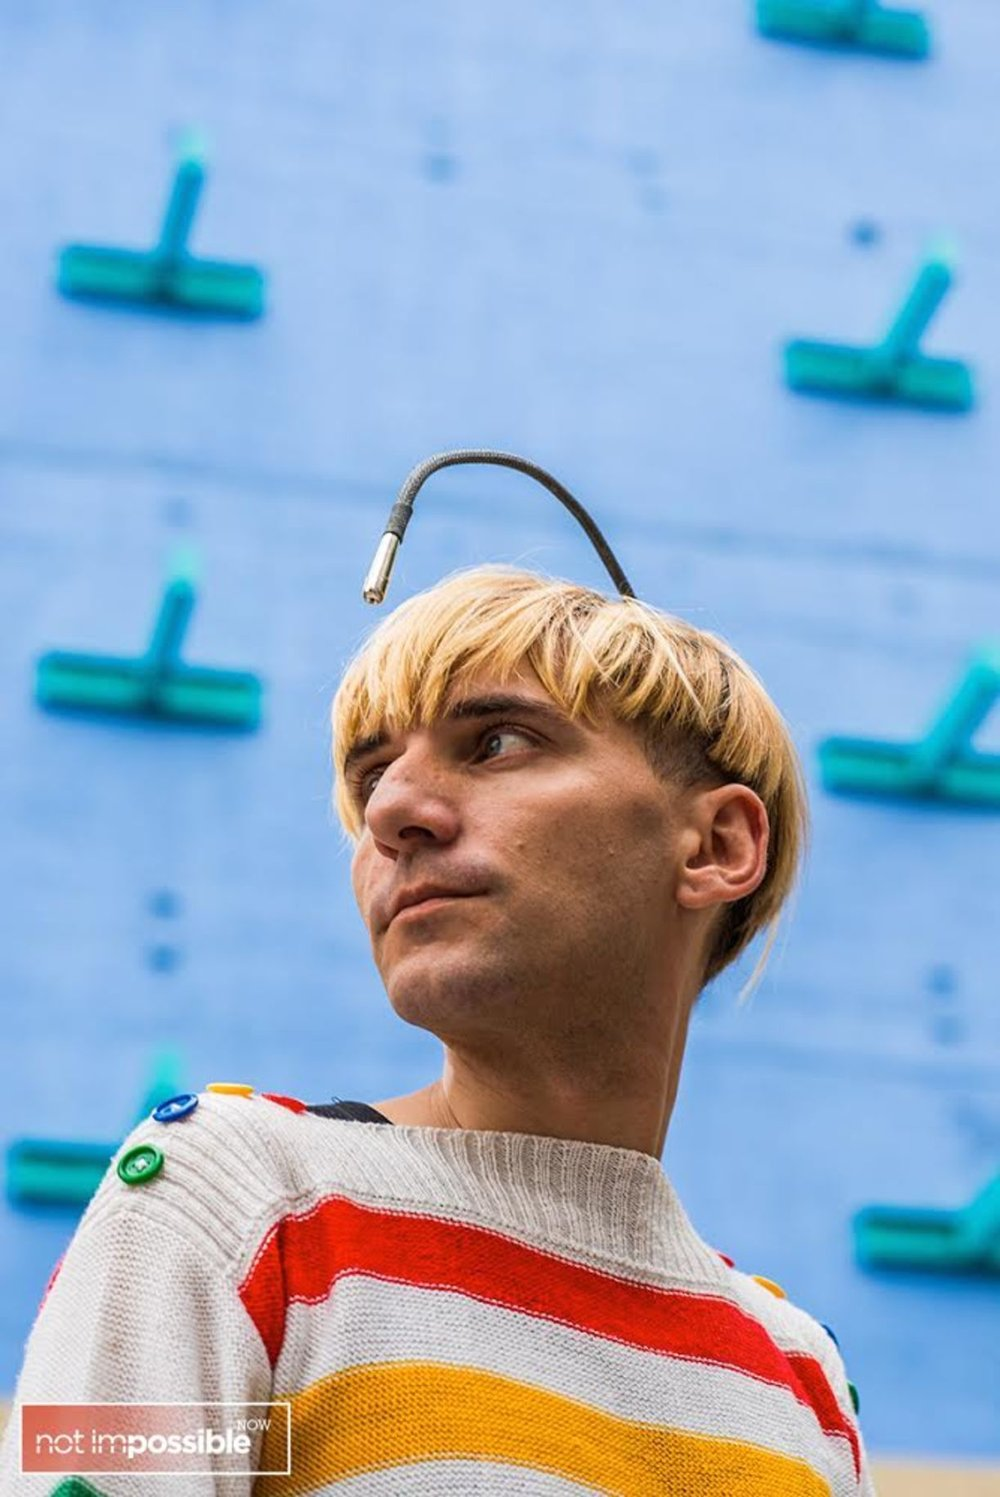 Neil Harbisson - photo by Scott McDermott for NotImpossibleNow.com